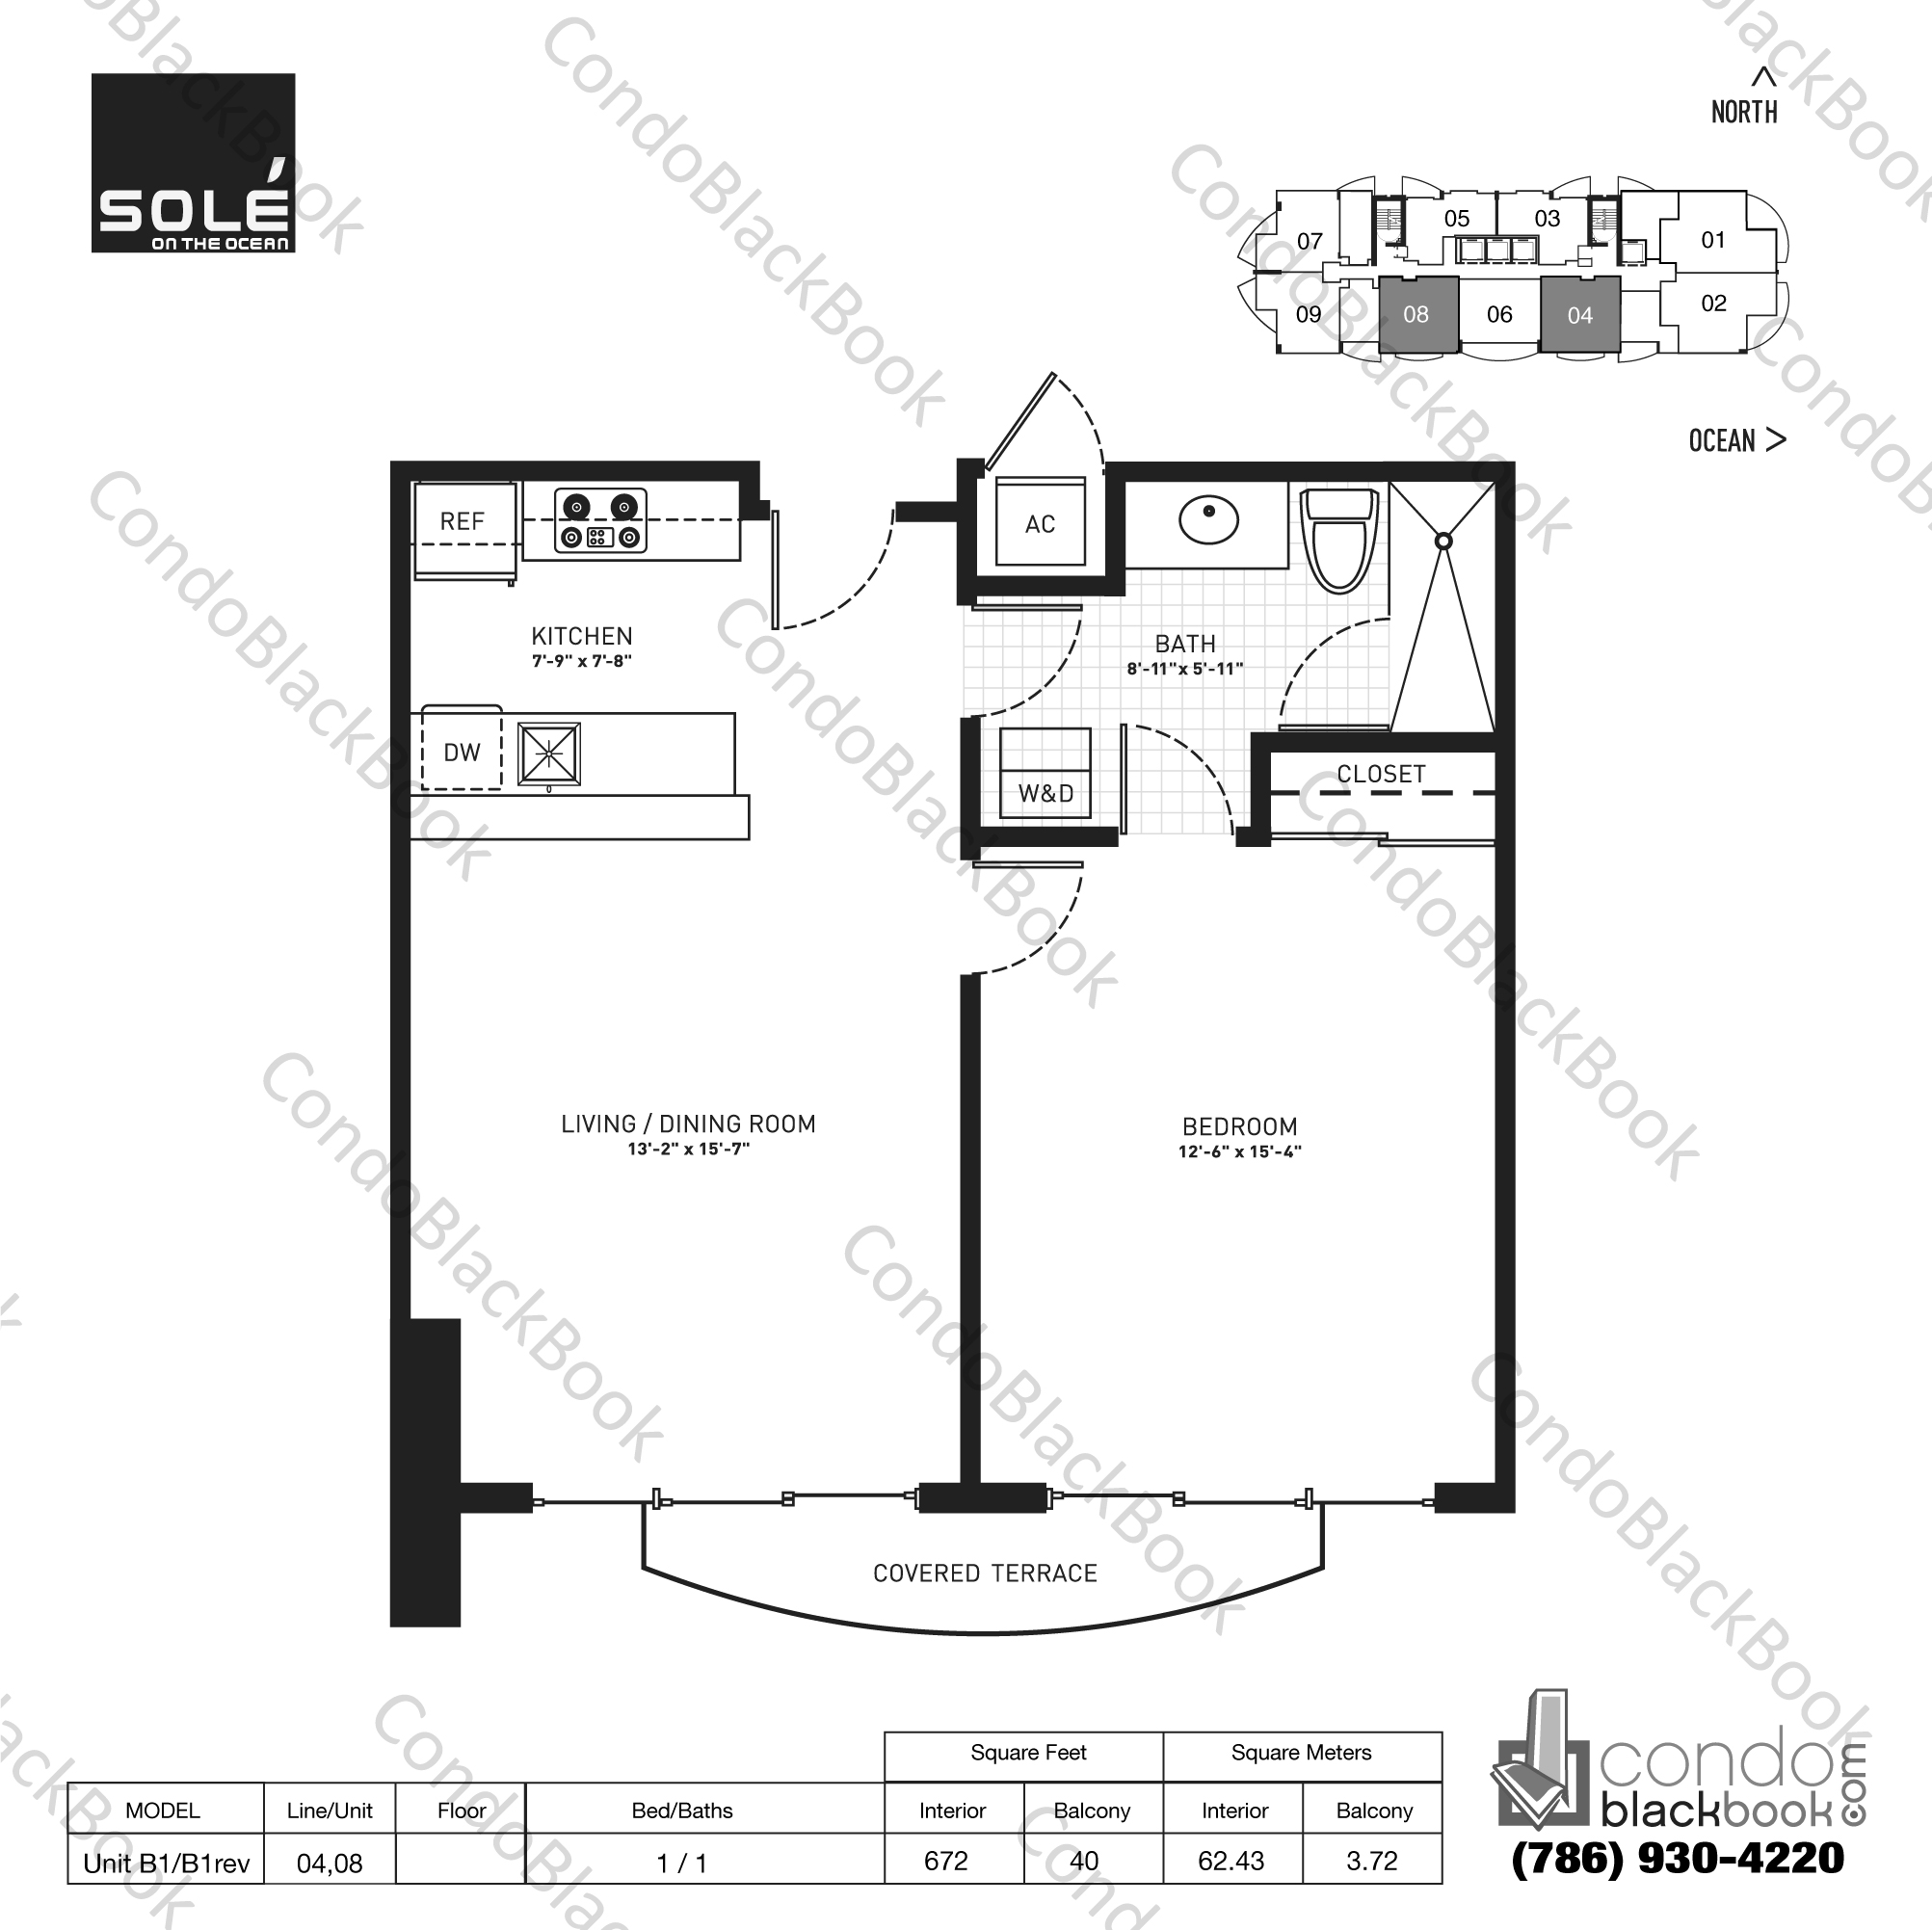 Floor plan for Sole Sunny Isles Beach, model Unit B1/B1 rev, line 04,08, 1 / 1 bedrooms, 672 sq ft